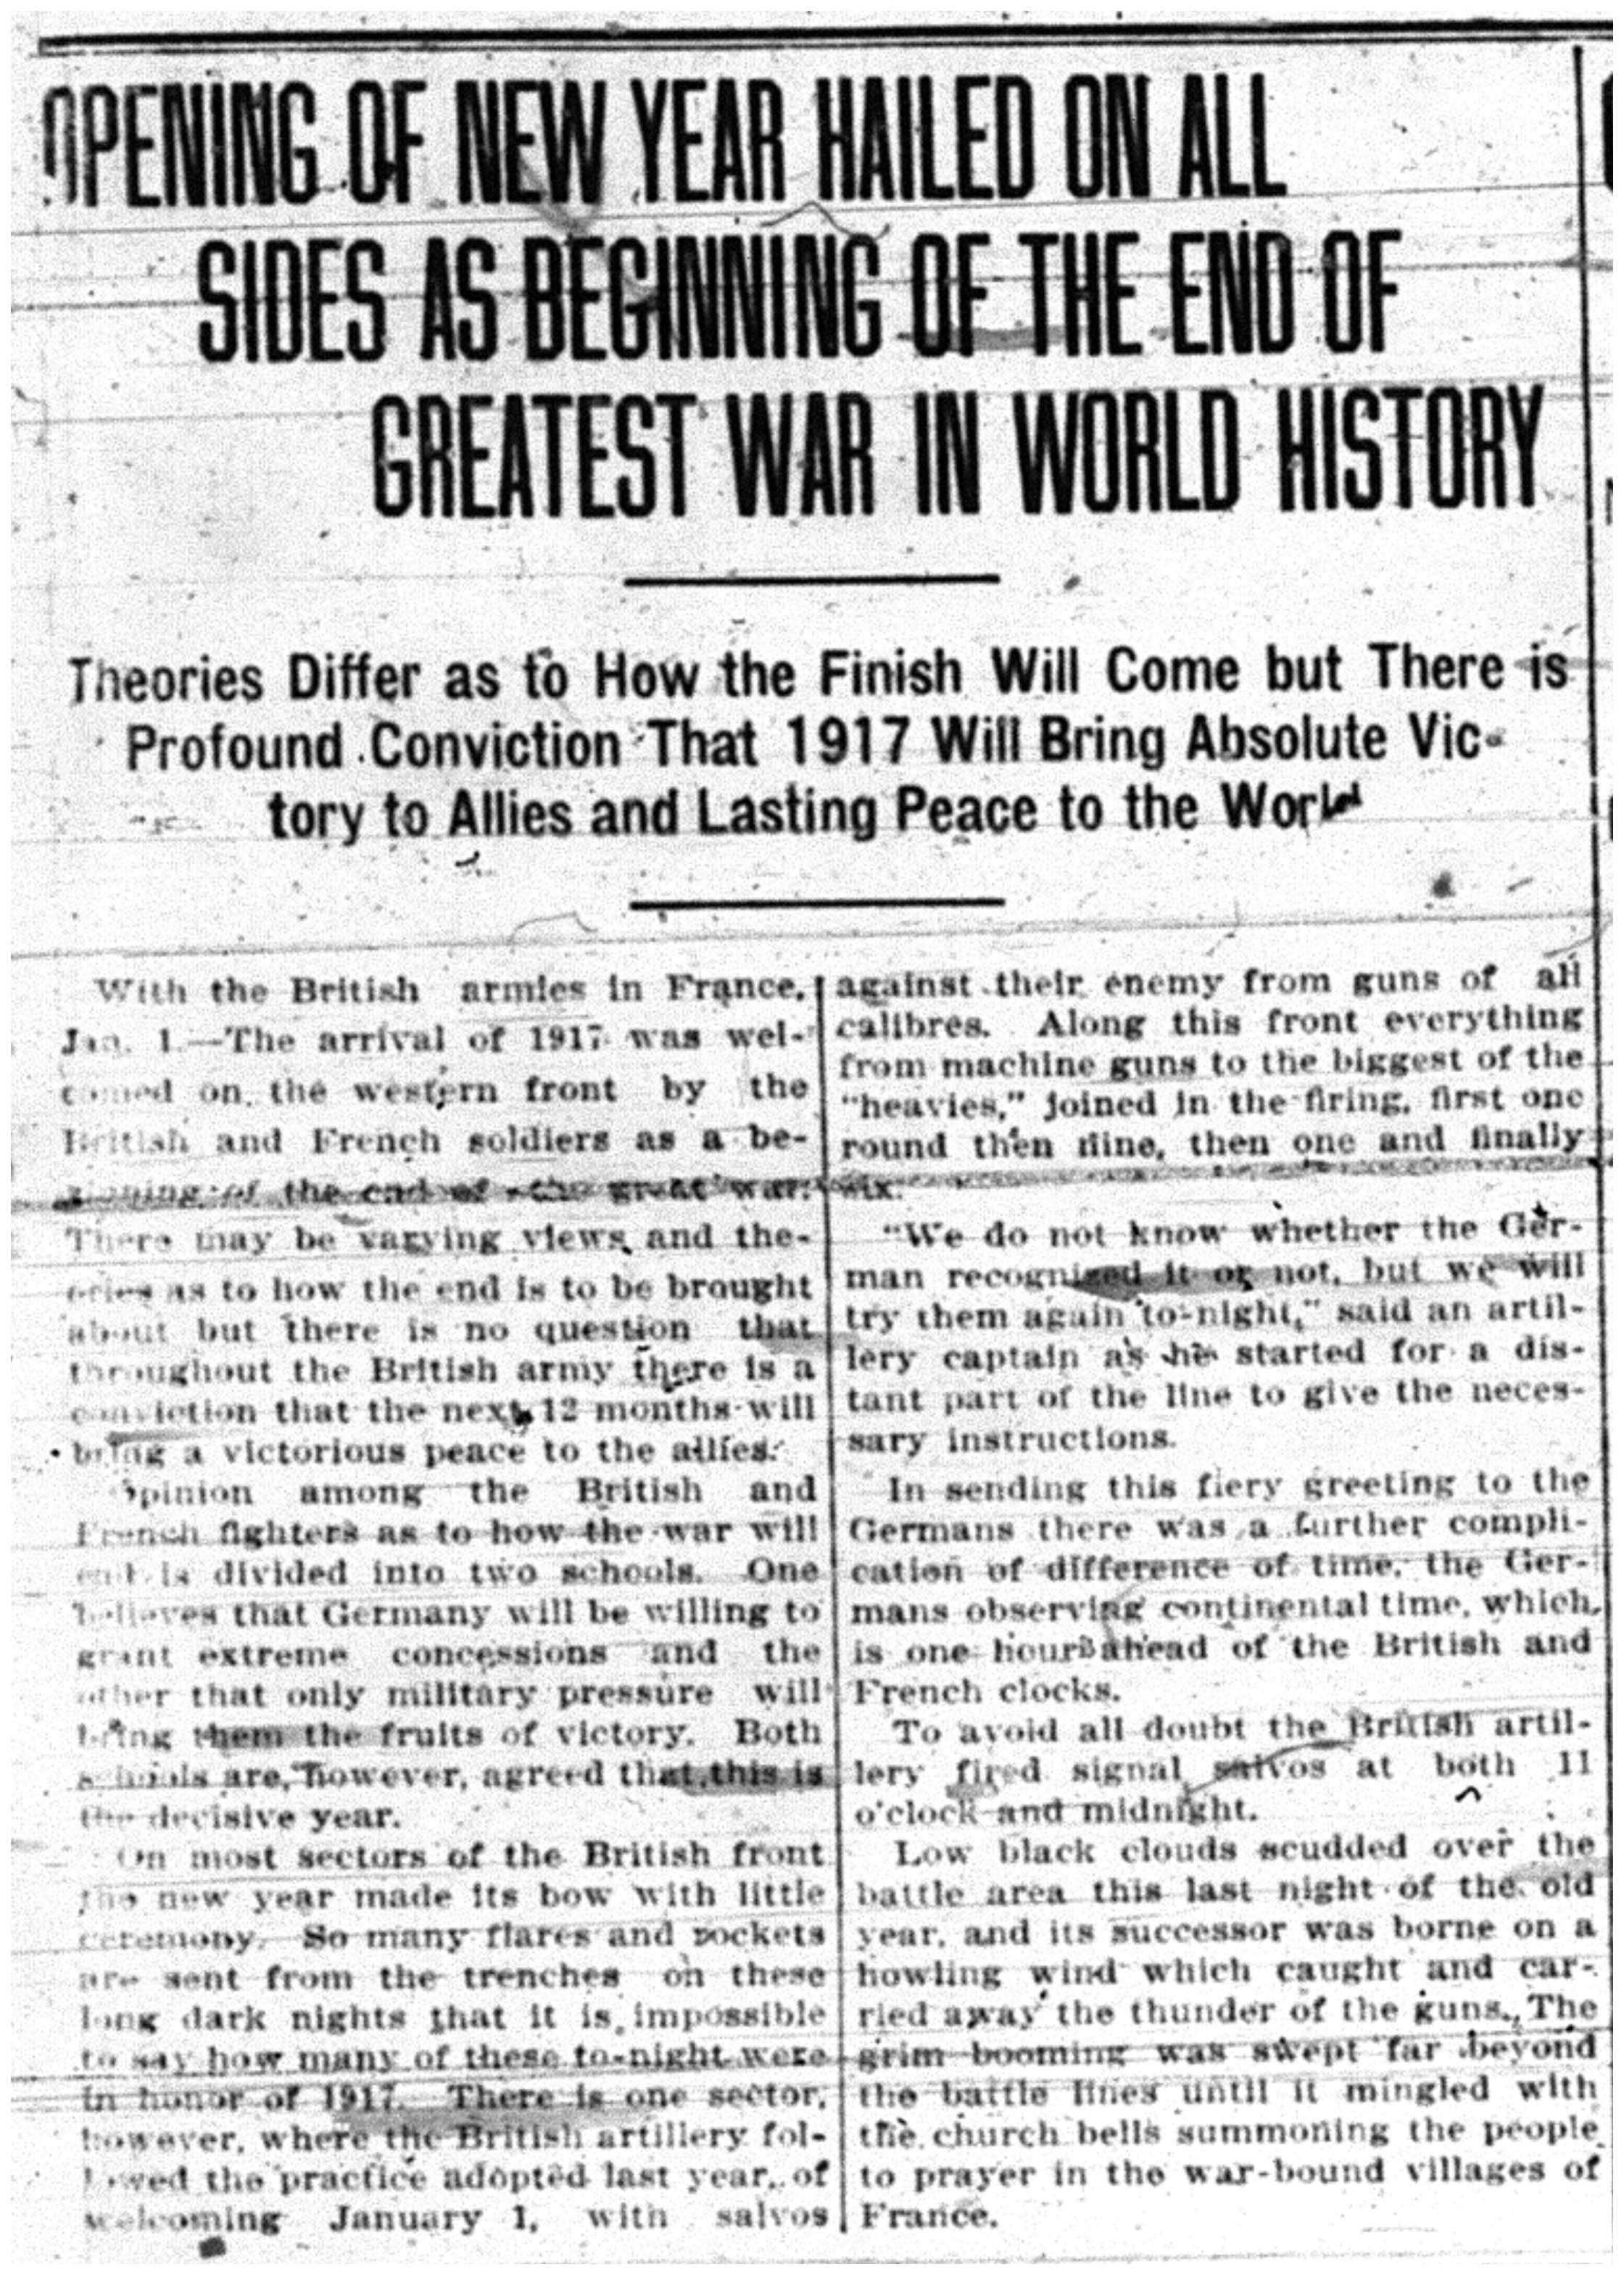 """Opening of New Year Hailed on All Sides as Beginning of the End of Greatest War in History"""